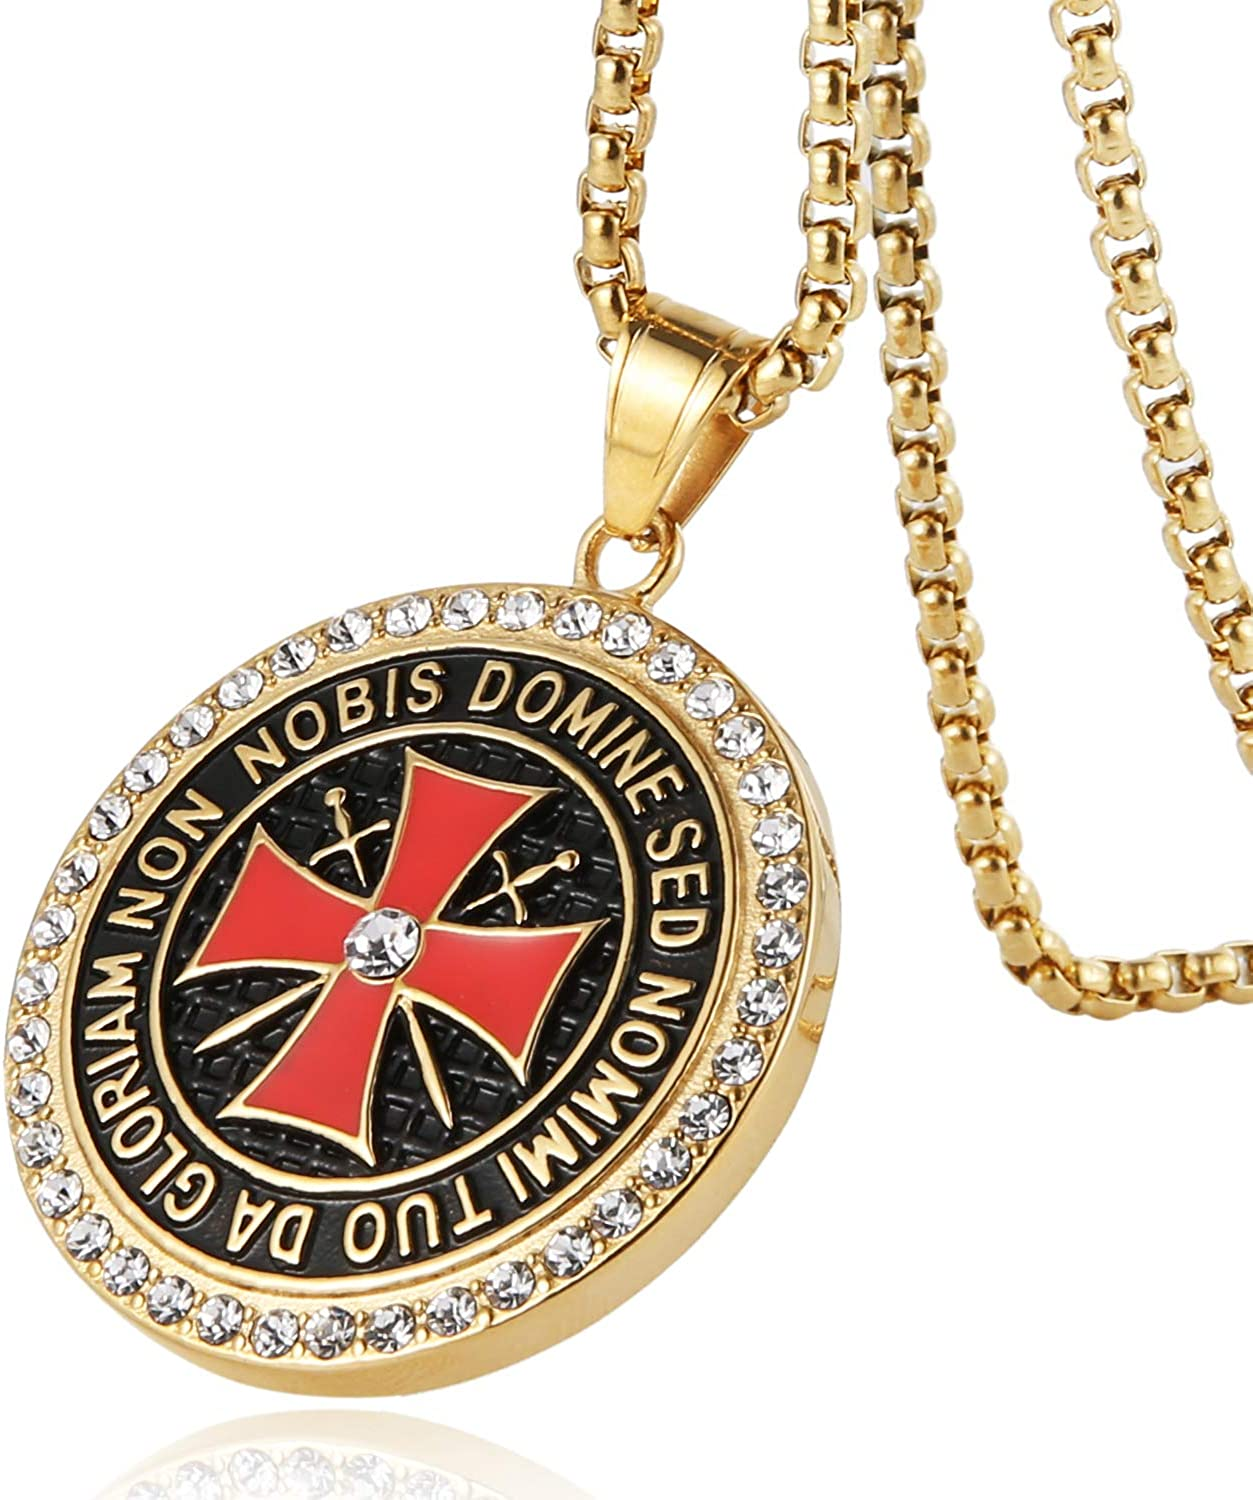 HZMAN Knight Templar Necklace - Masonic College Style GOLD Color Stainless Steel Pendant for Men